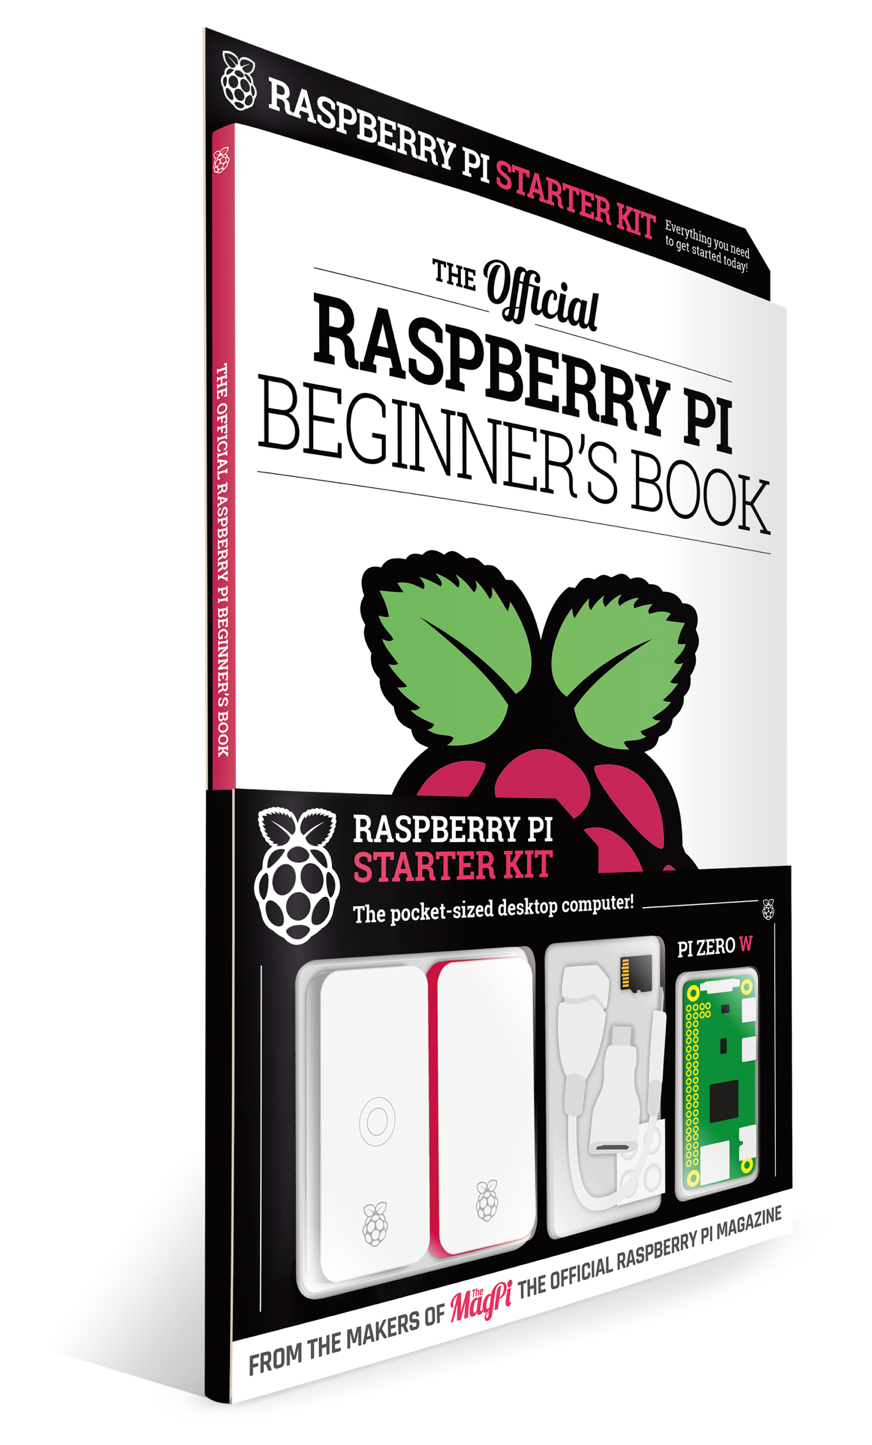 how to get a raspberry pi for free